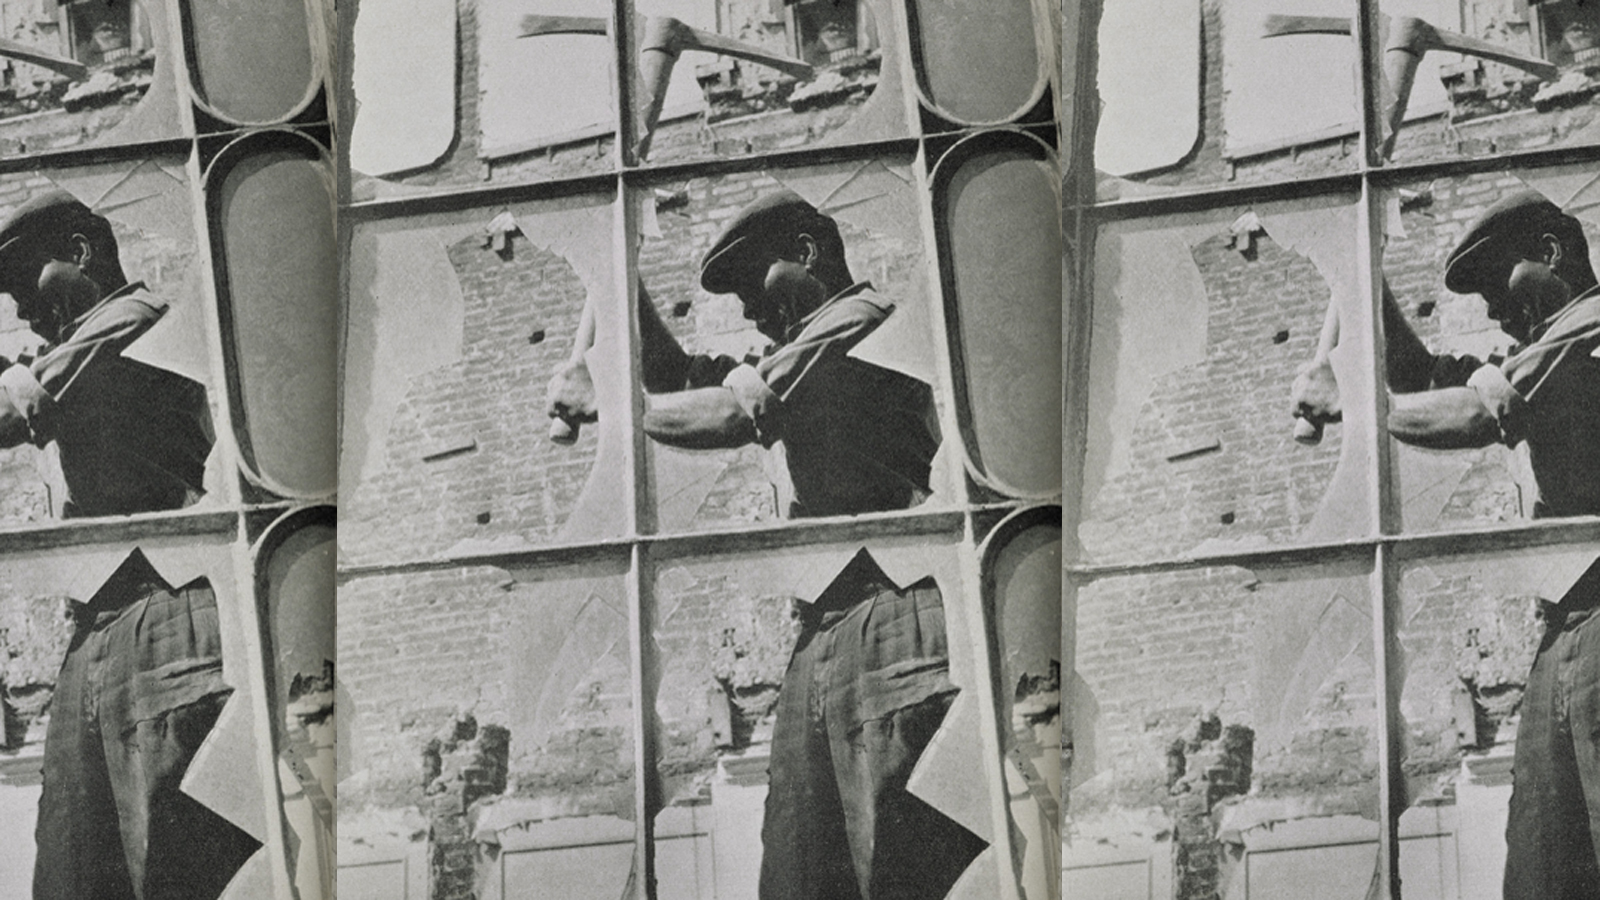 Repeated photograph of a Caribbean man using a pickaxe for demolition work, from the BBC pamphlet Going to Britain?